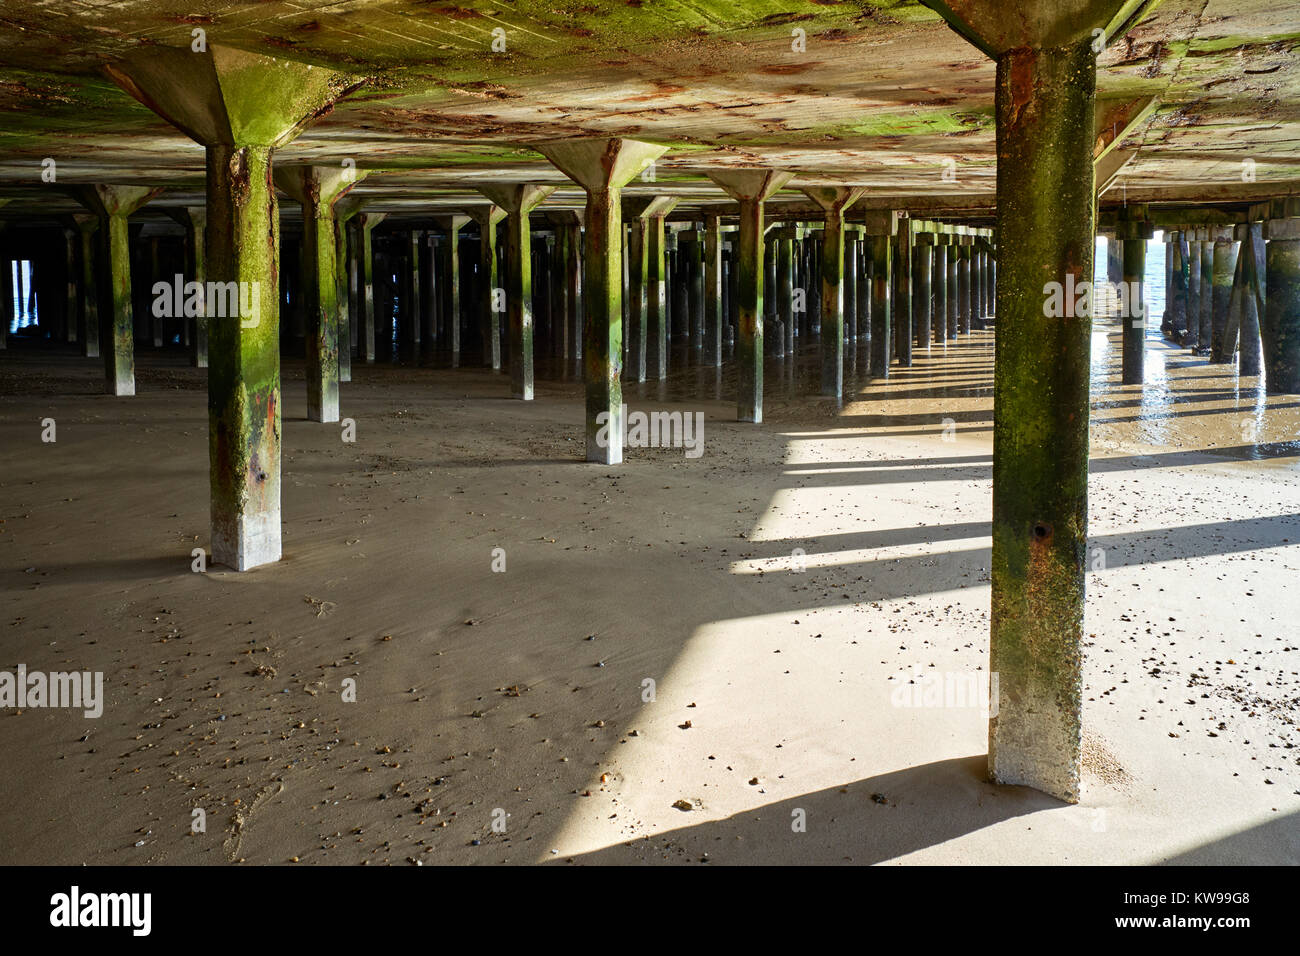 Supports under Clacton pier at low tide - Stock Image